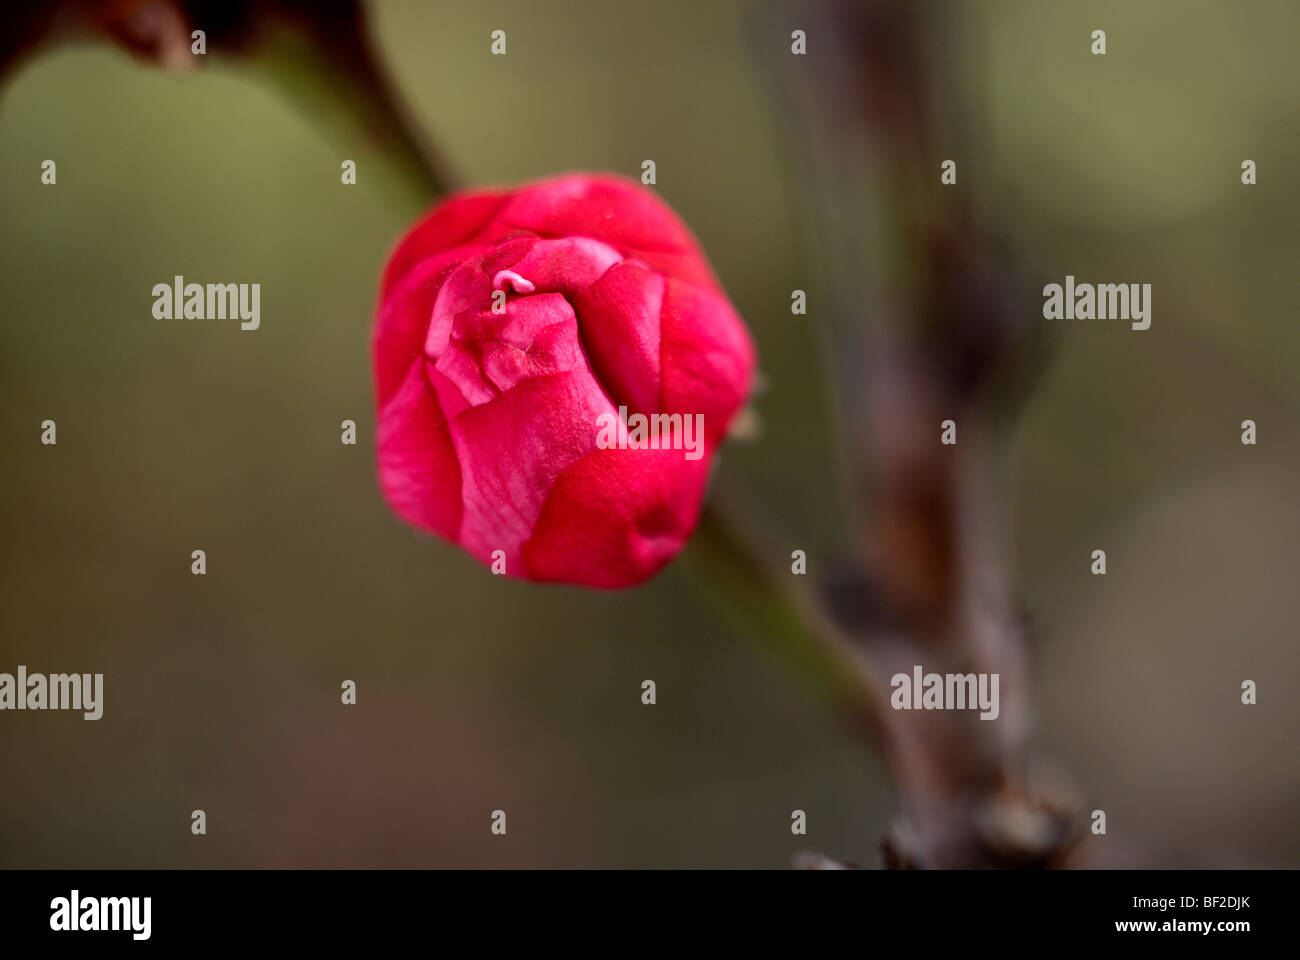 Ornamental peach tree, tree bud, bud, peach tree, pink, branch, green background, oriental, macro, close-up, close - Stock Image